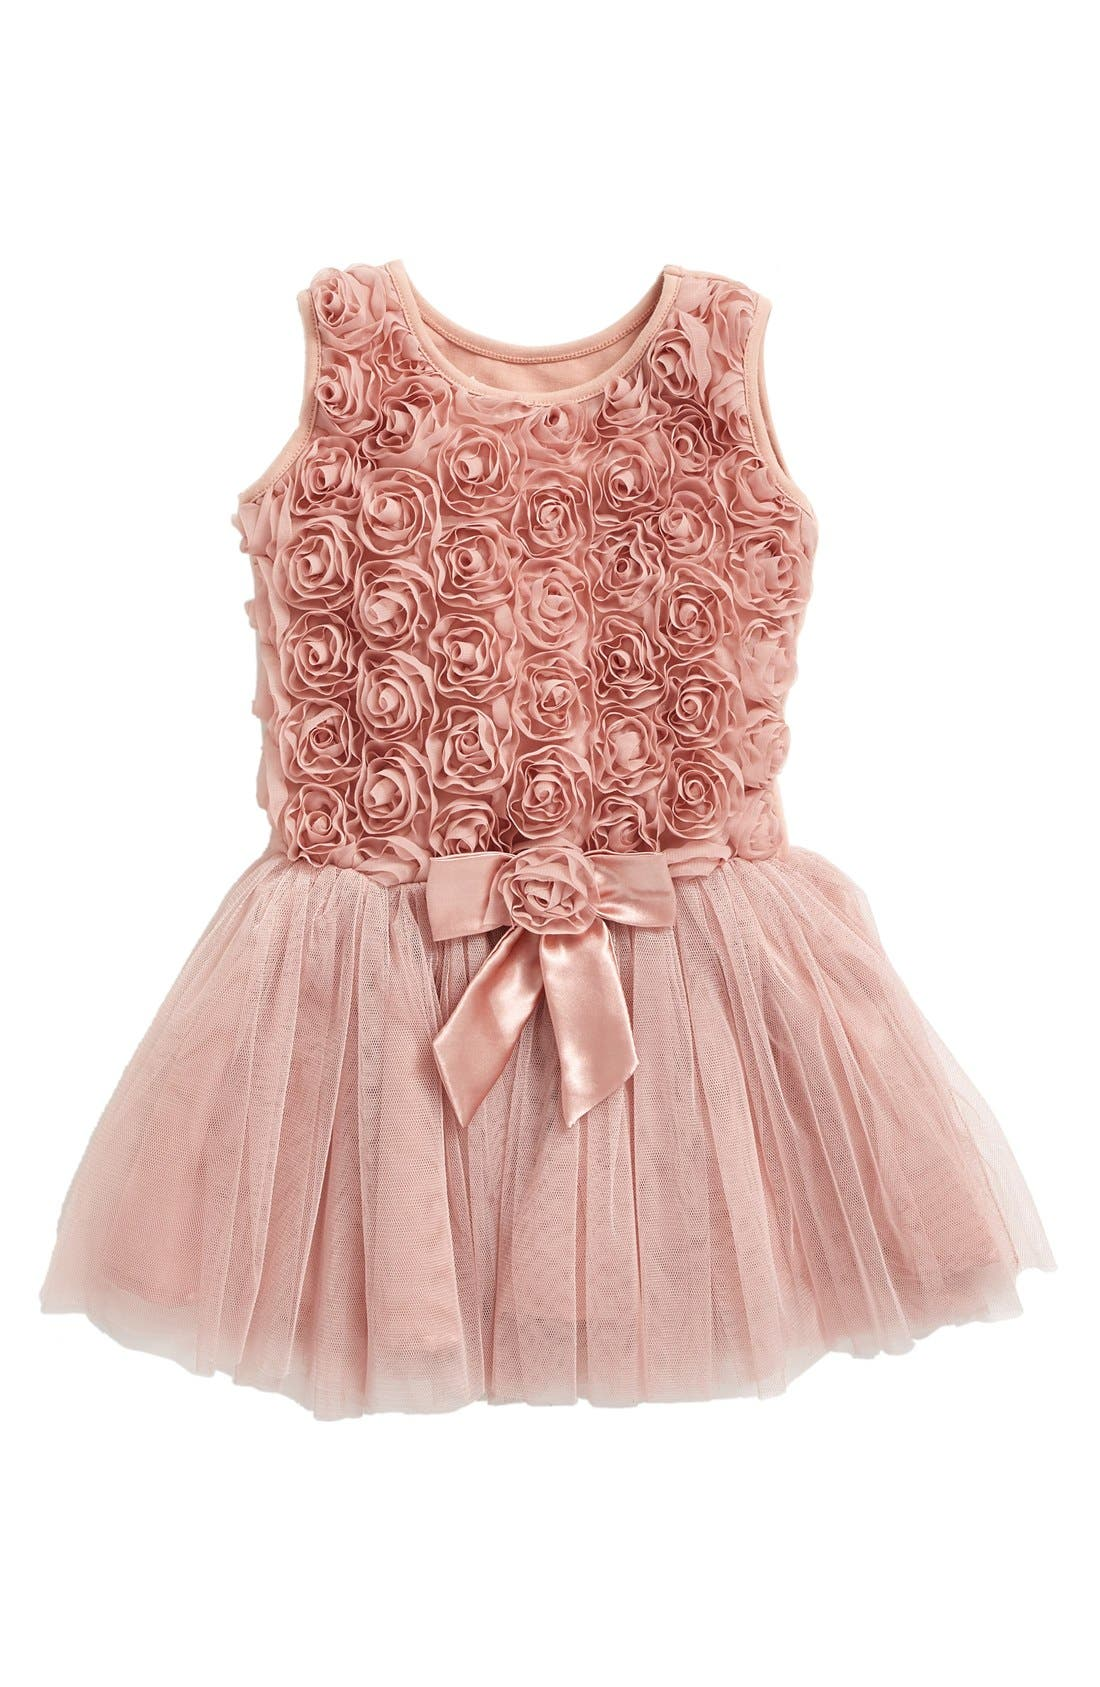 Ribbon Rosette Tutu Dress,                             Main thumbnail 1, color,                             DUSTY PINK